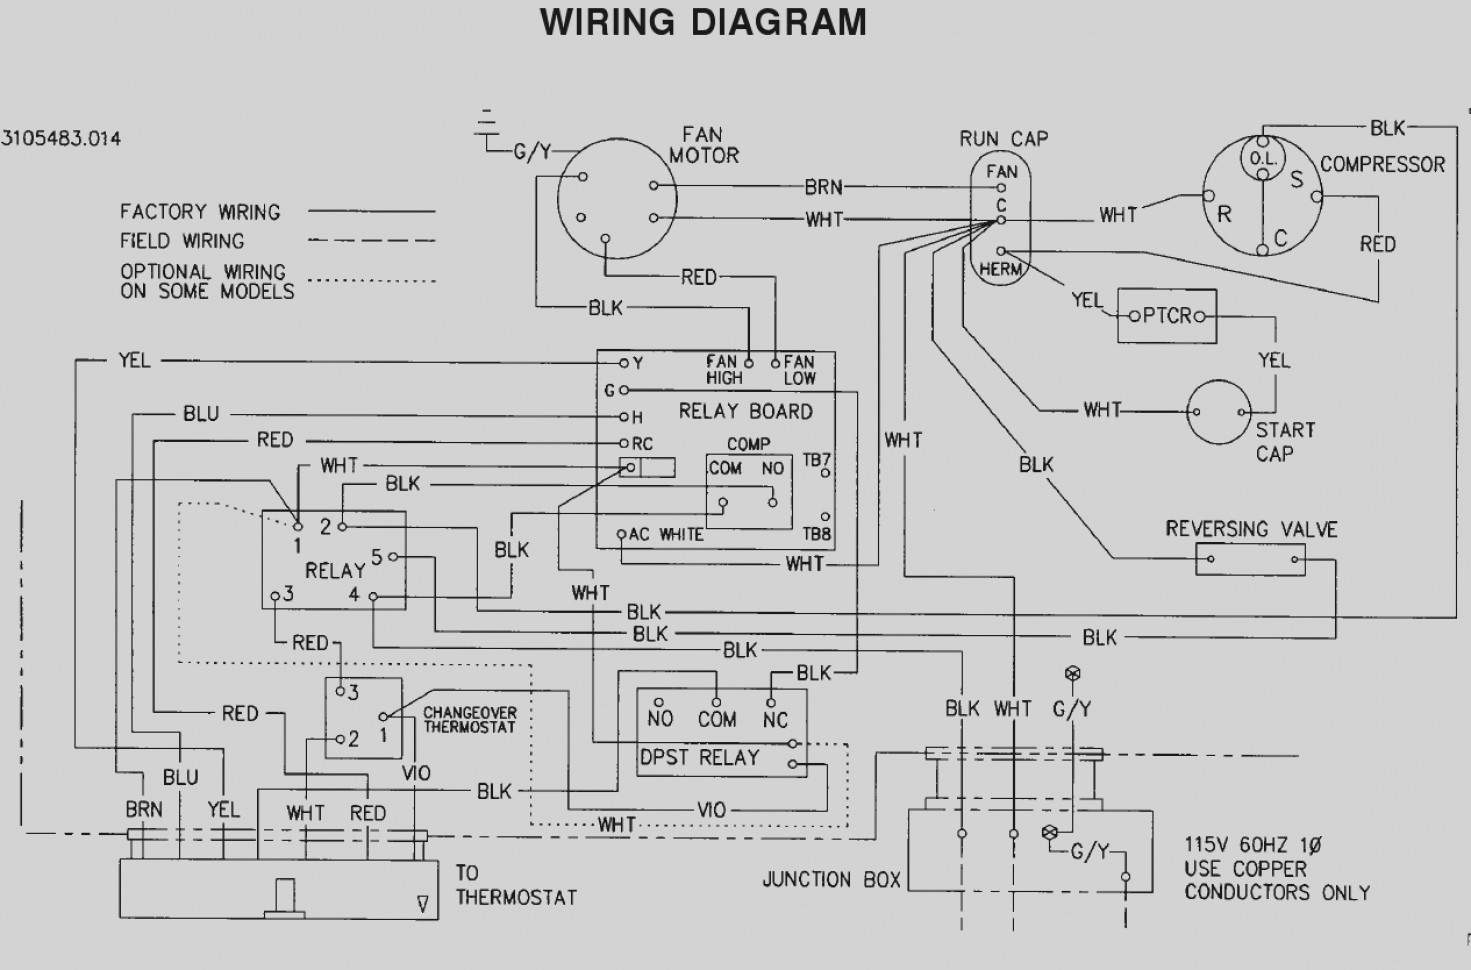 Goodall Wiring Diagrams | Repair Manual on